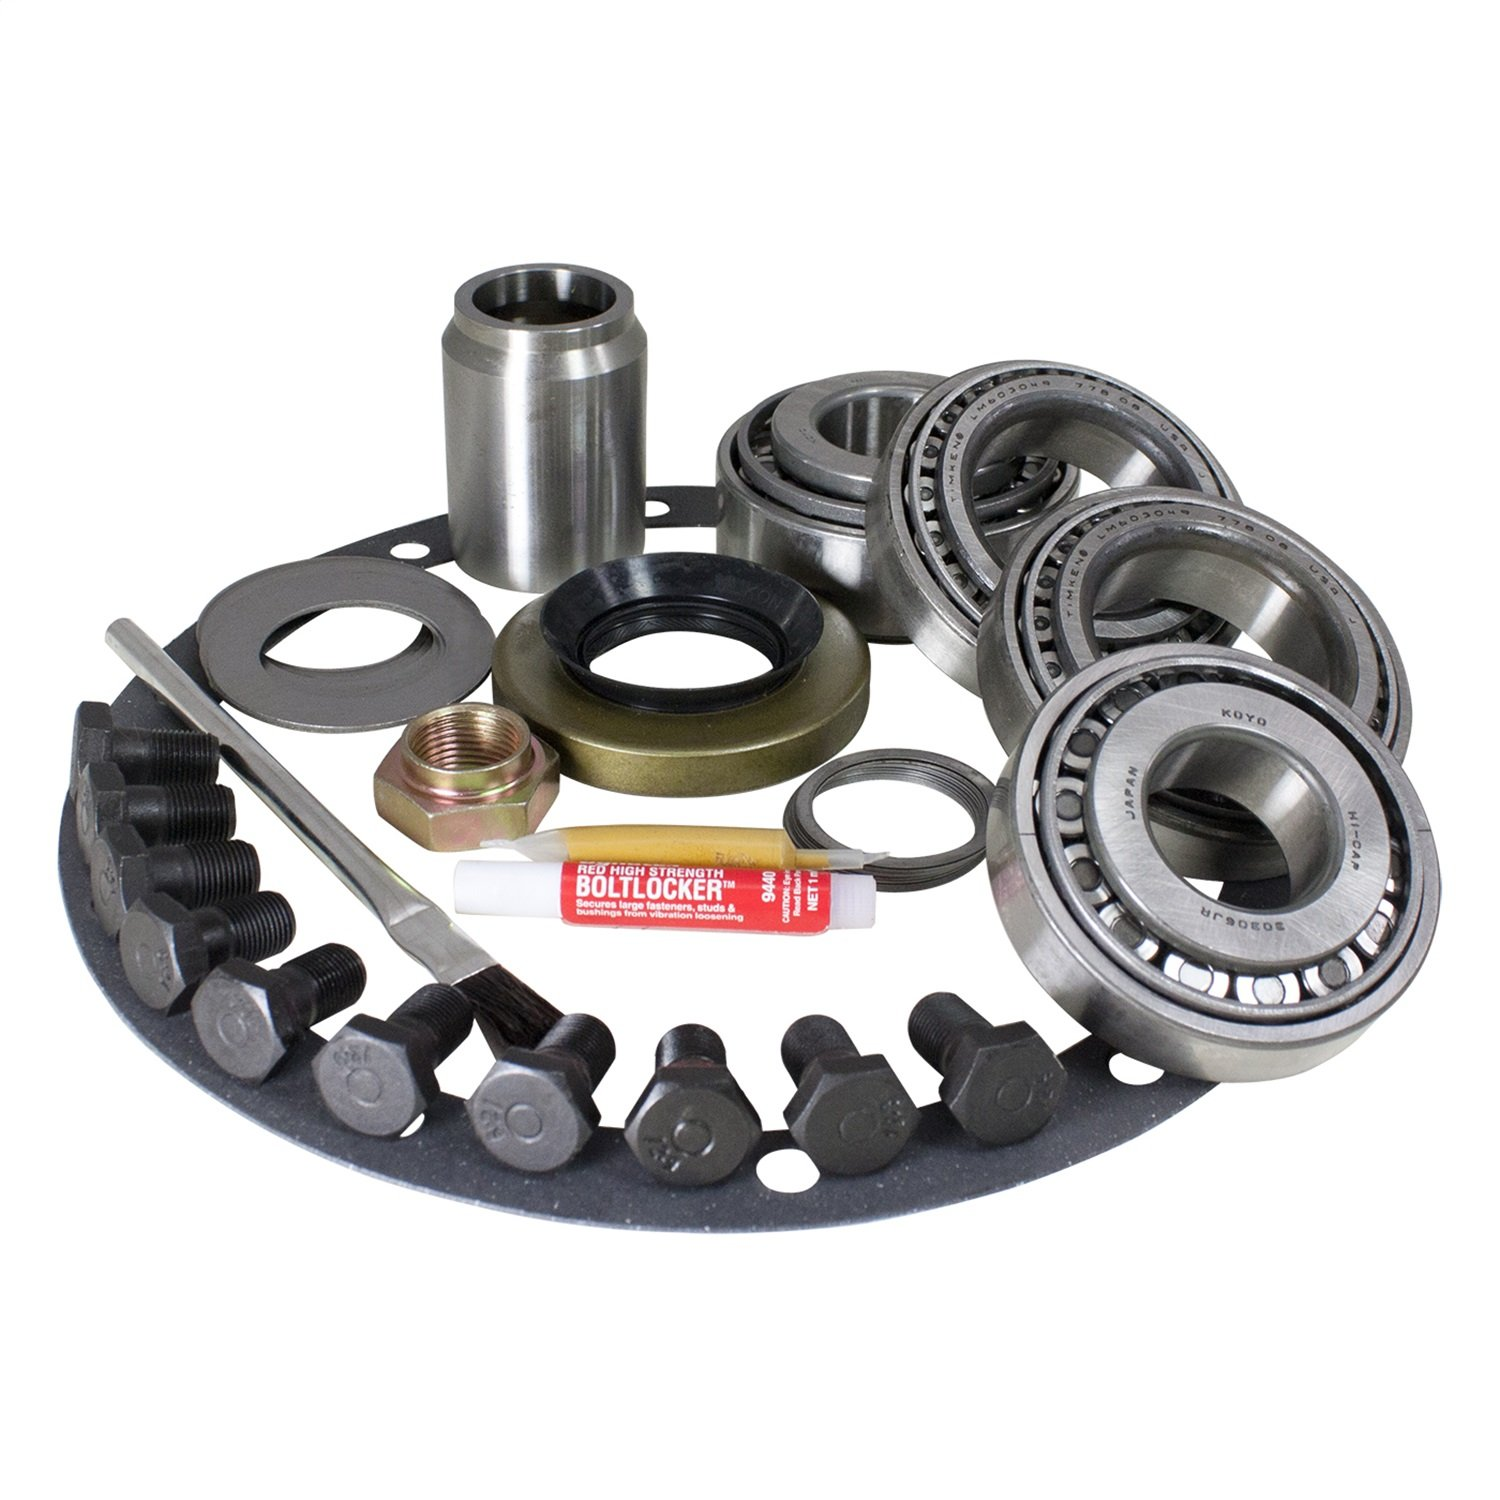 Yukon Gear & Axle (YK TV6-SPC) Master Overhaul Kit for Toyota V6 & Turbo 4 Differential by Yukon Gear